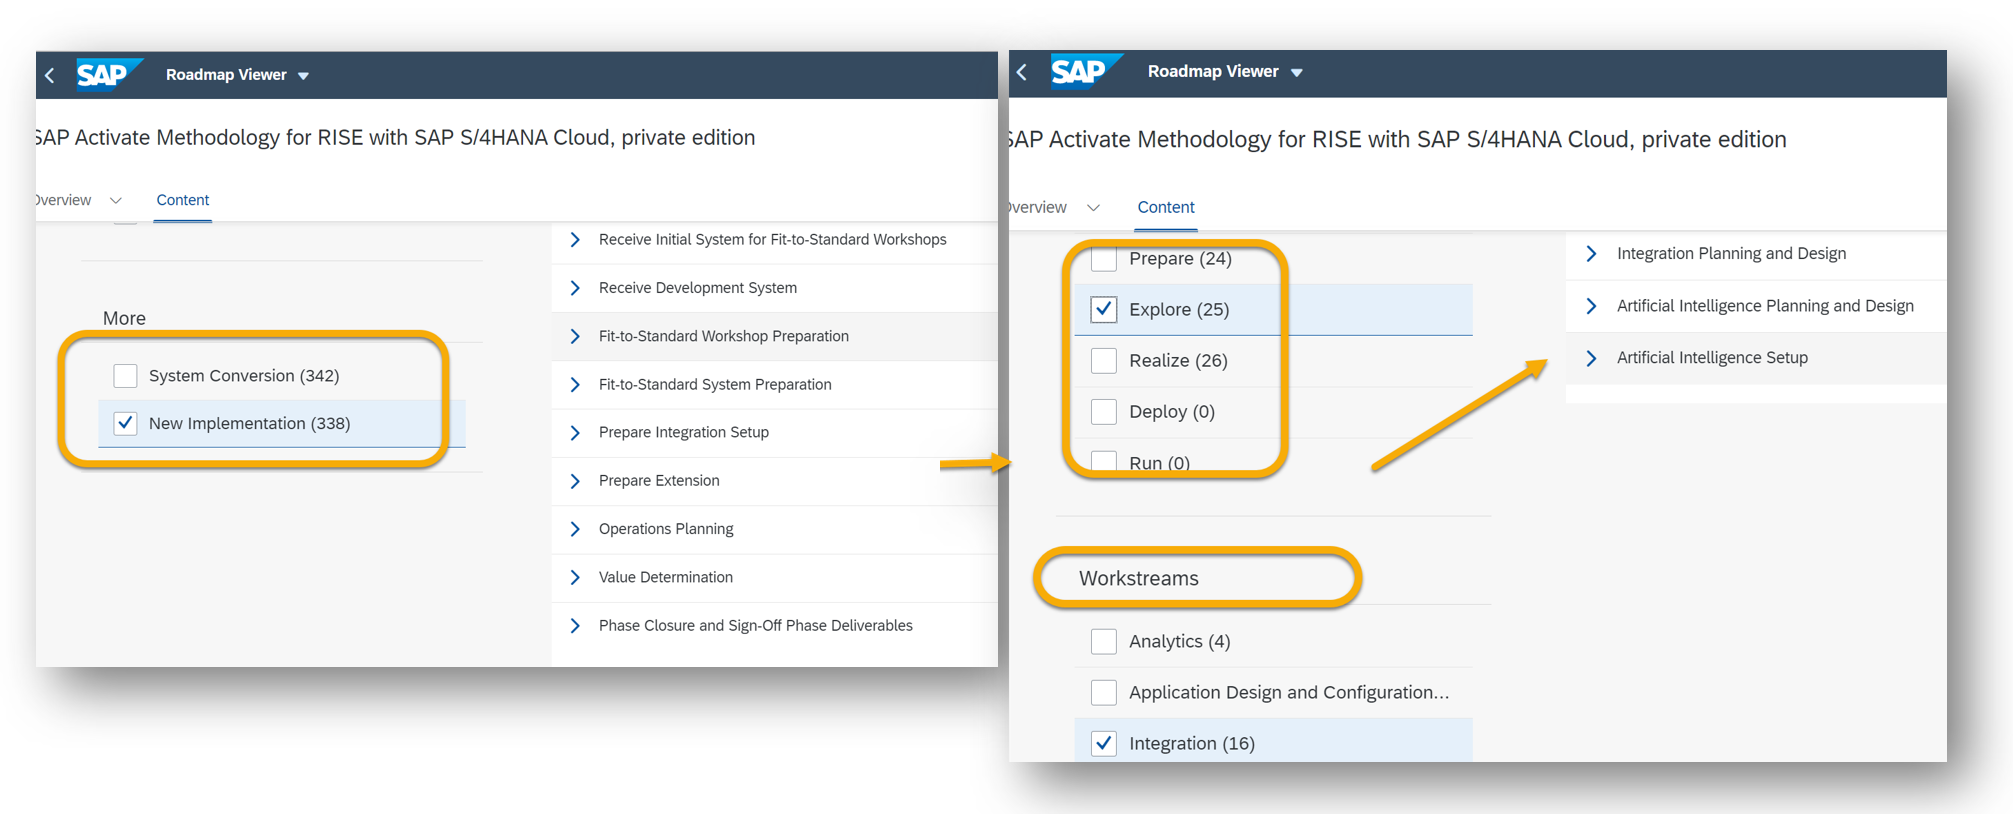 %u2022%20Figure%205%3A%20SAP%20Activate%20Methodology%20for%20RISE%20with%20SAP%20S/4HANA%20Cloud%2C%20private%20edition